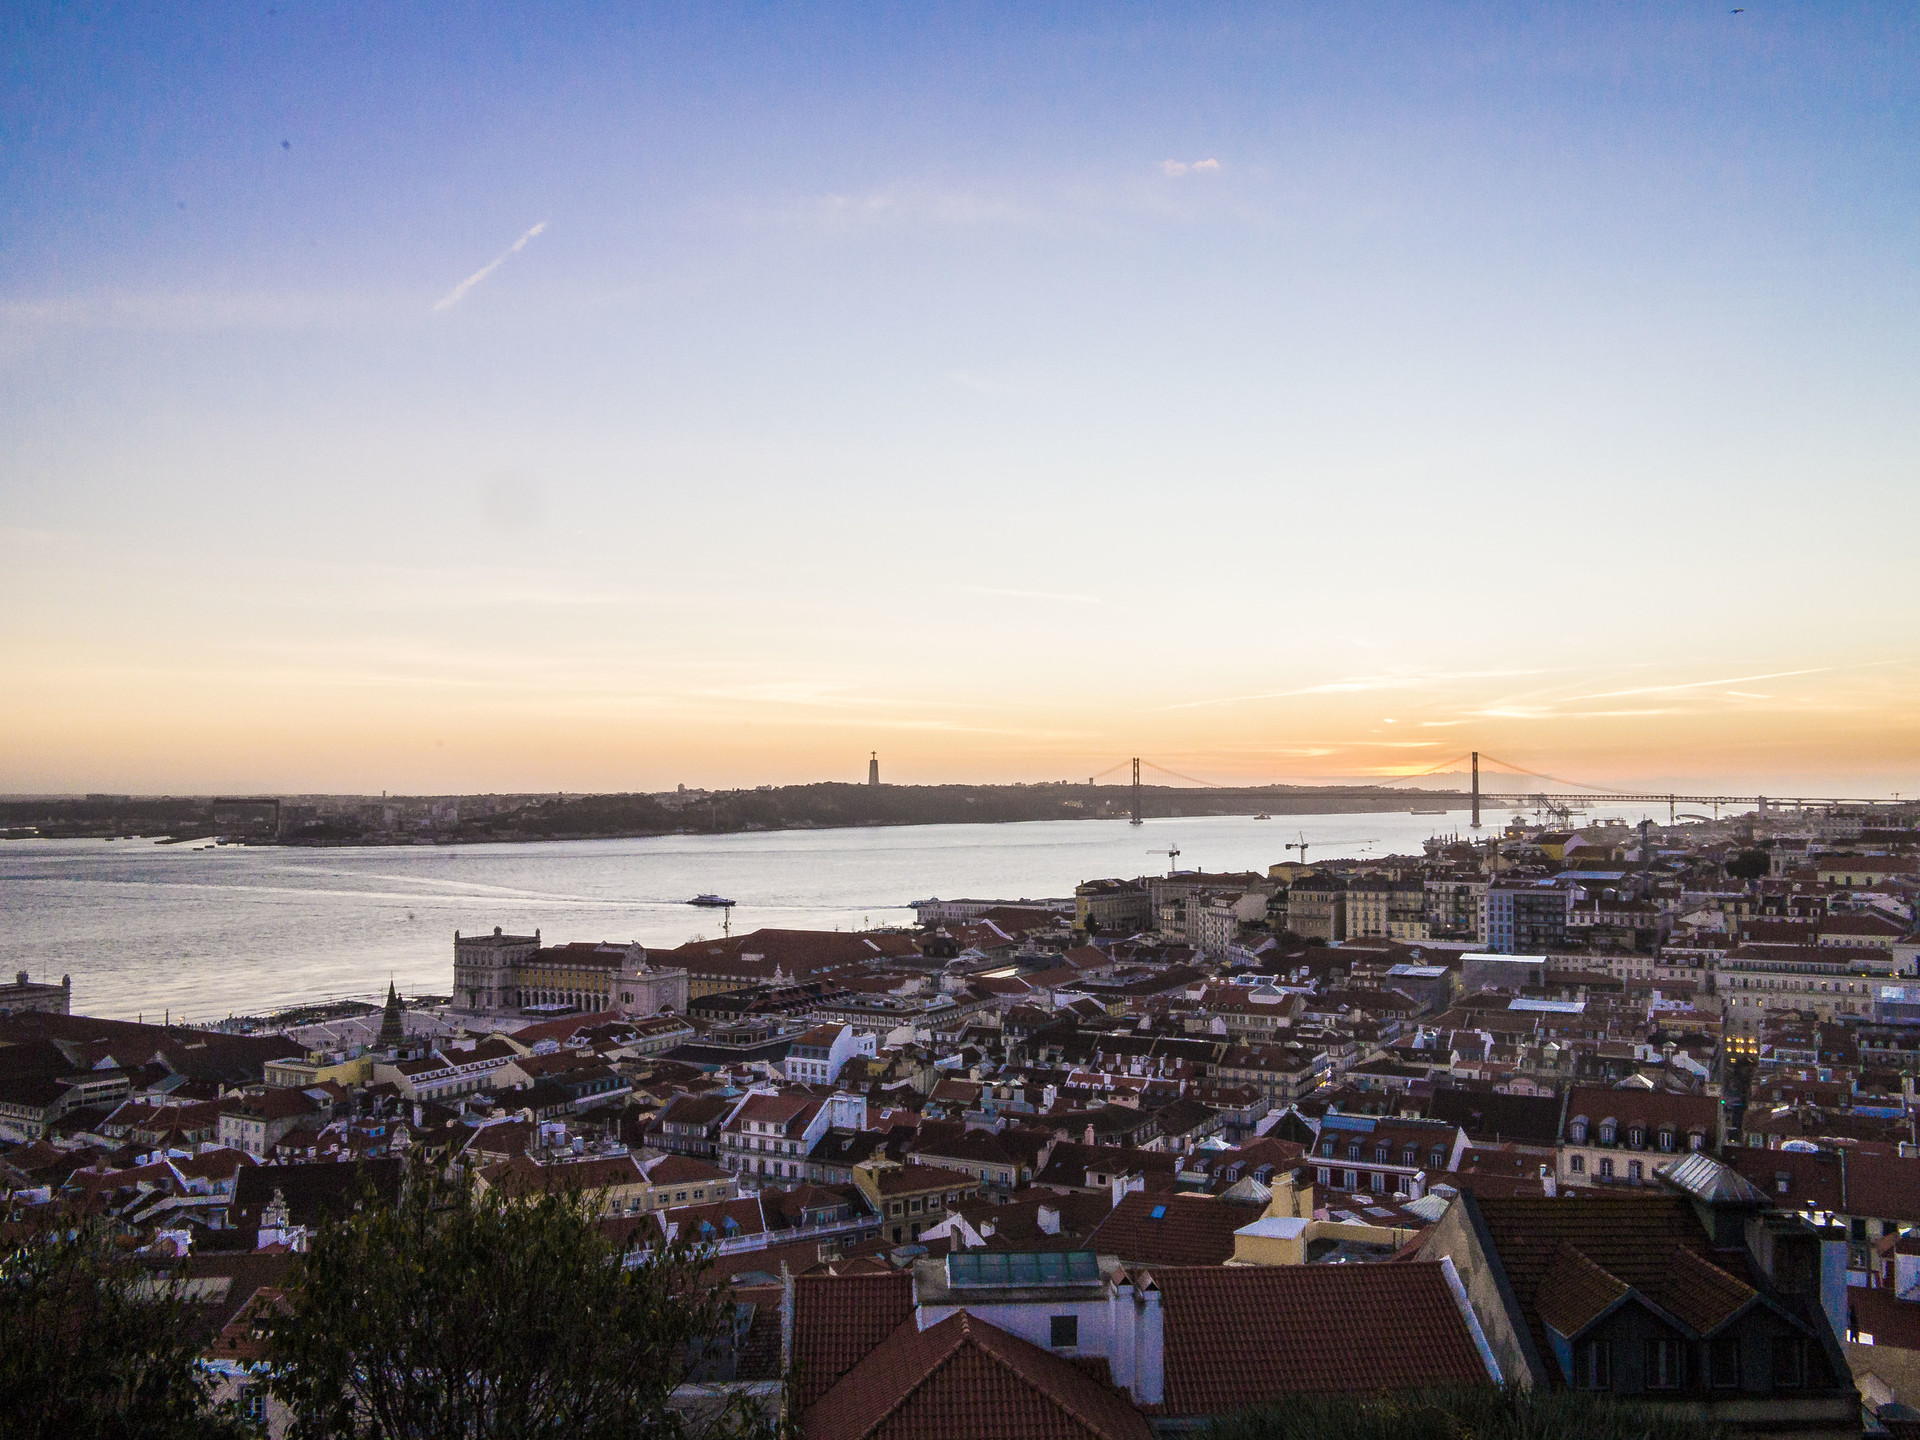 The Castle of the City of Lisbon